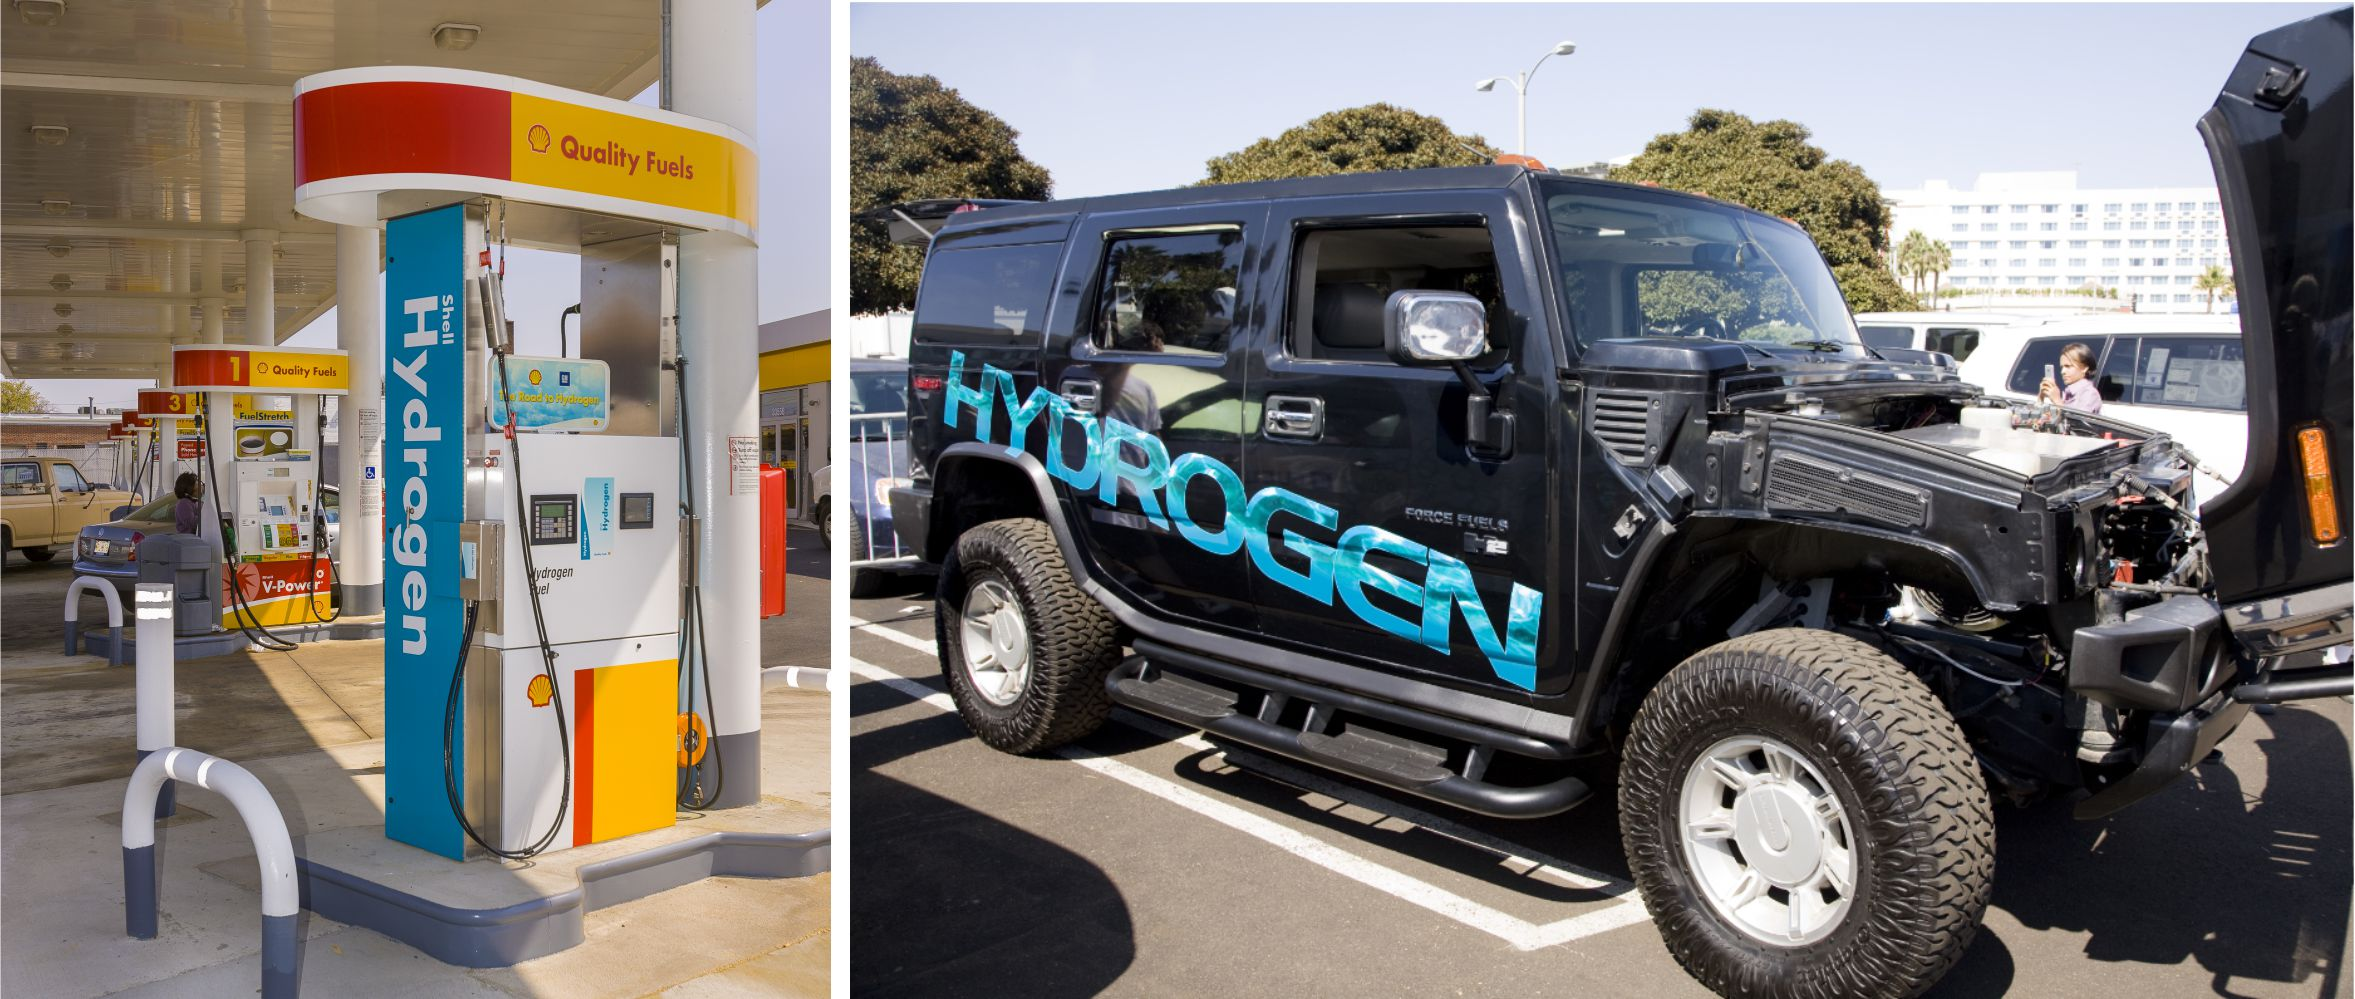 Hydrogen vehicle fuel